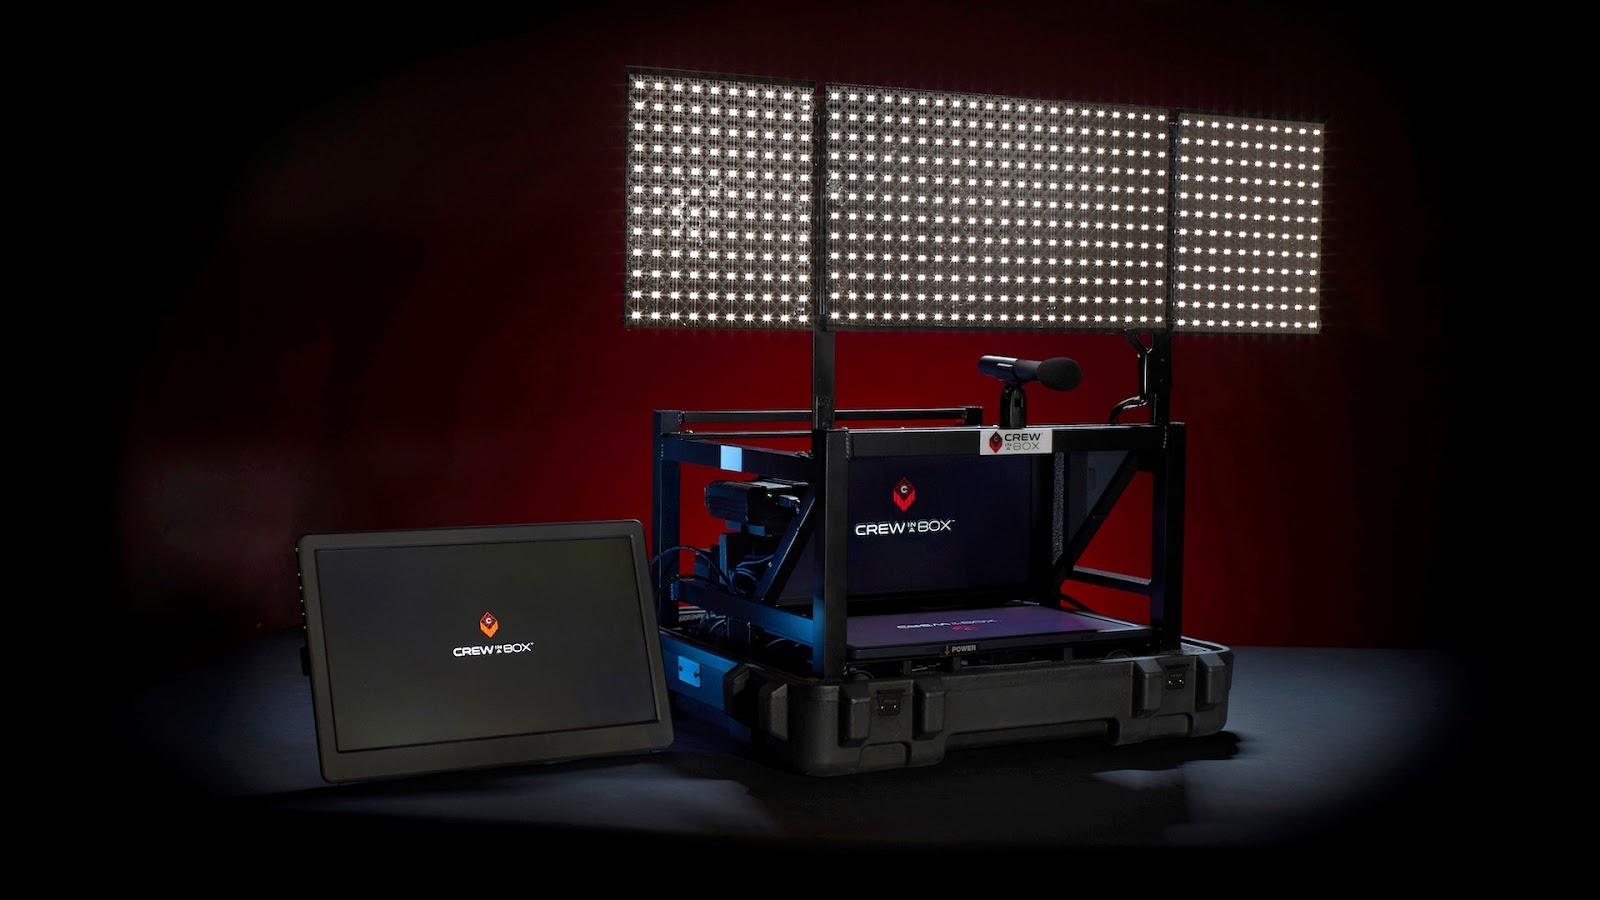 Crew in a Box, the world's first professional-quality, plug-and-play, remote video production solution, has enabled crew, talent, networks and brands to continue working safely during the pandemic.